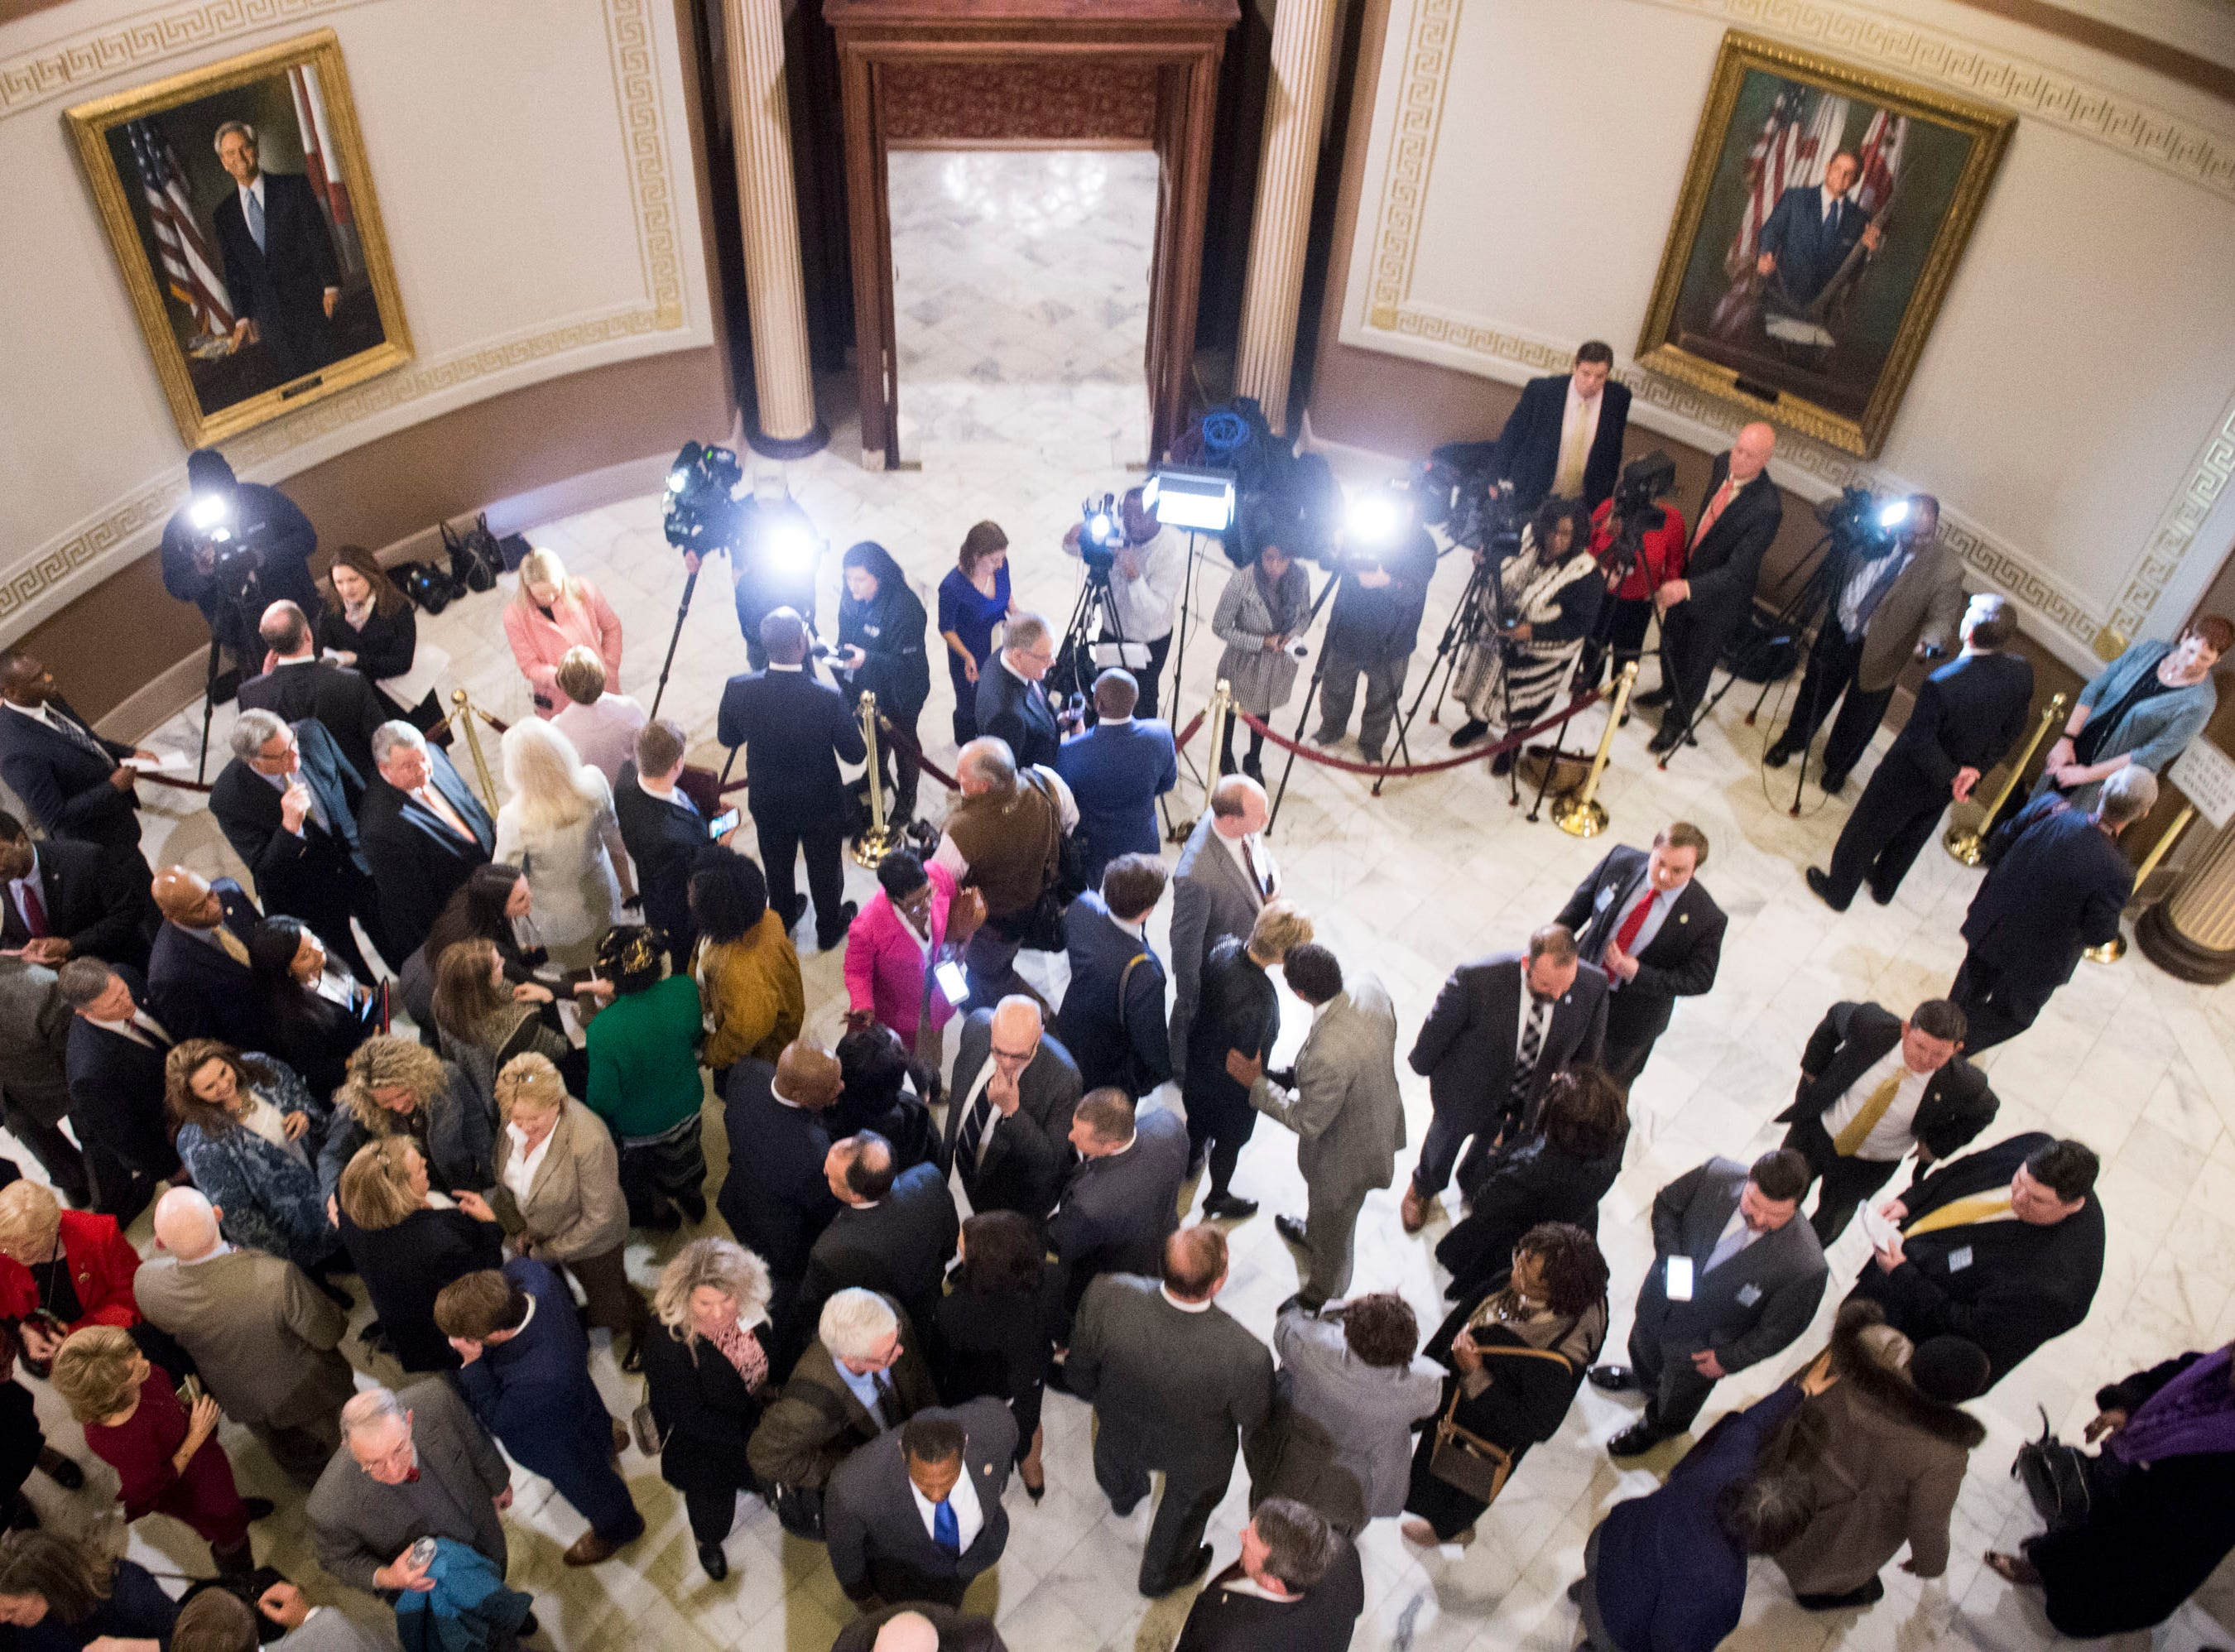 Media interviews legislatures and other officials after the State of the State address inside the old house chambers at the Alabama State Capitol in Montgomery, Ala., on Tuesday, March 5, 2019.